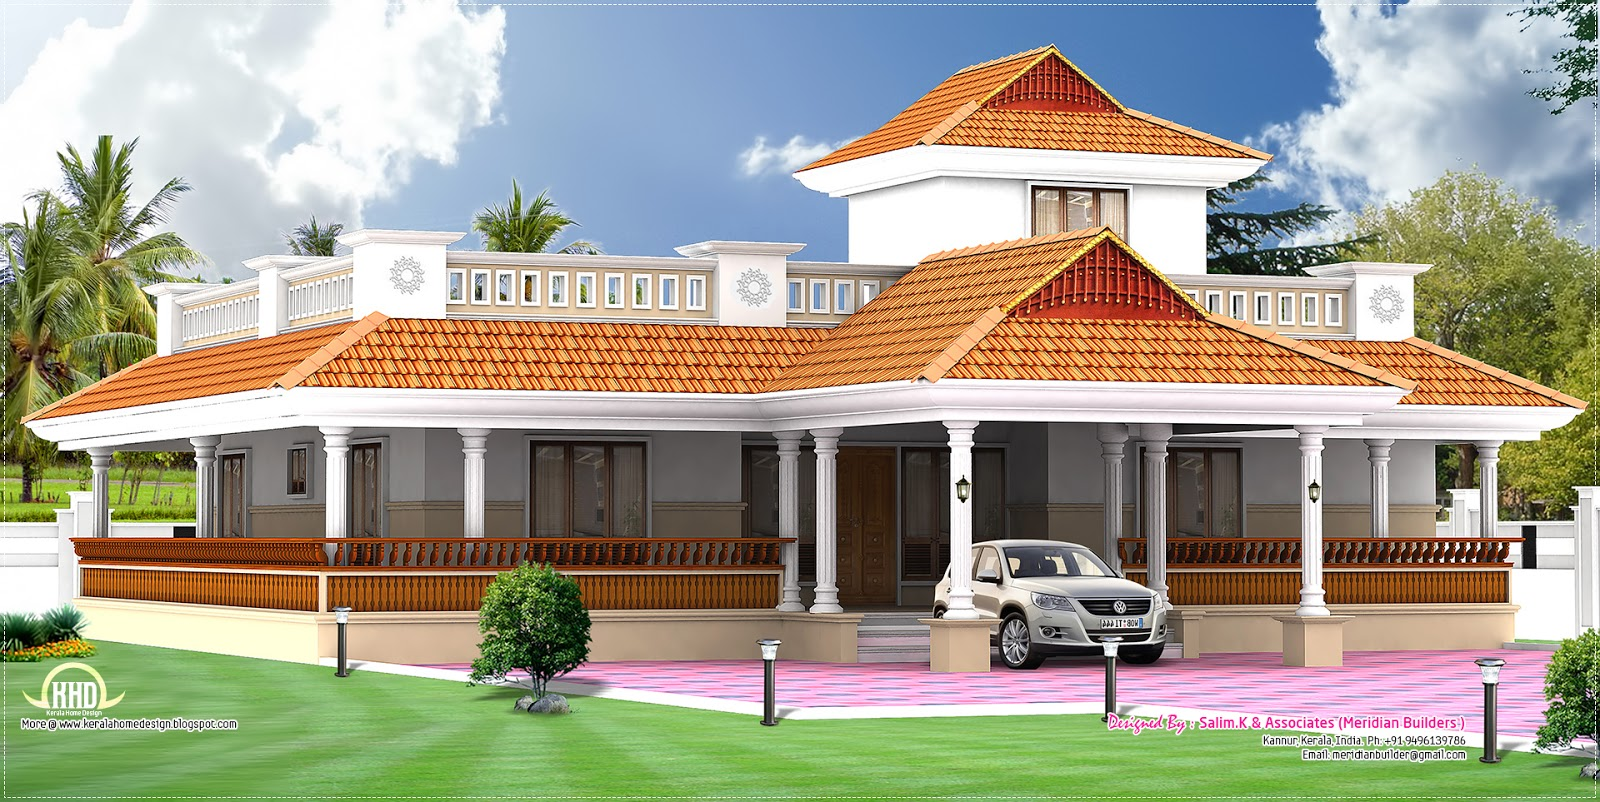 Kerala style vastu oriented 2 bedroom single storied residence house design plans - Vastu shastra home design and plans ...